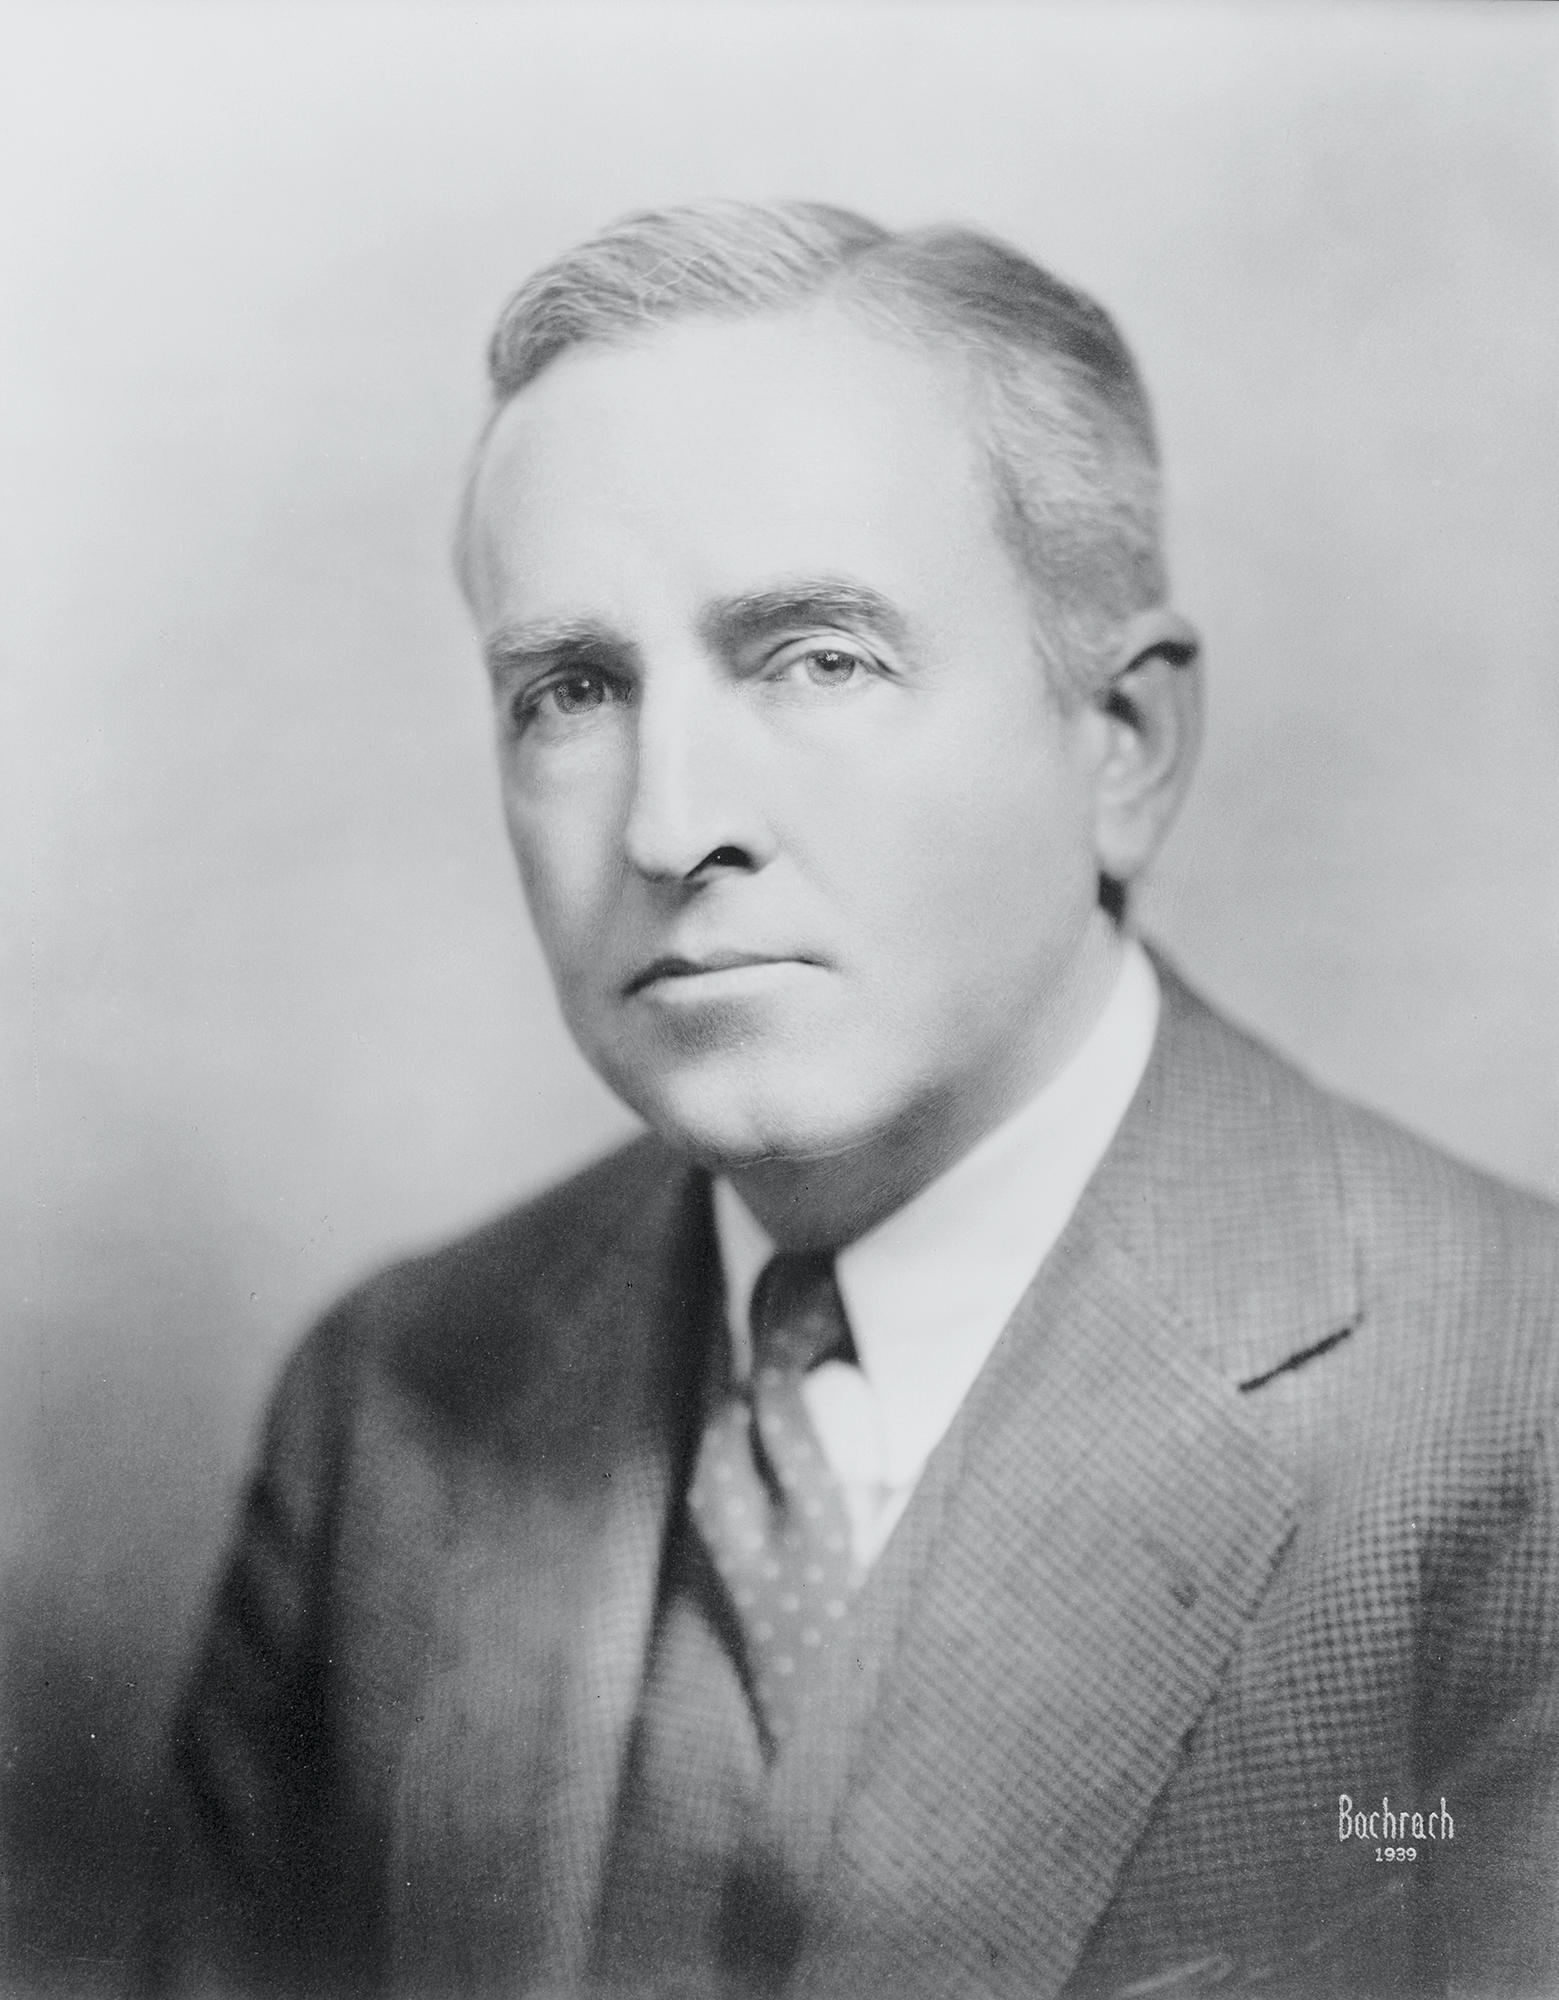 A black and white image of Arthur Pope